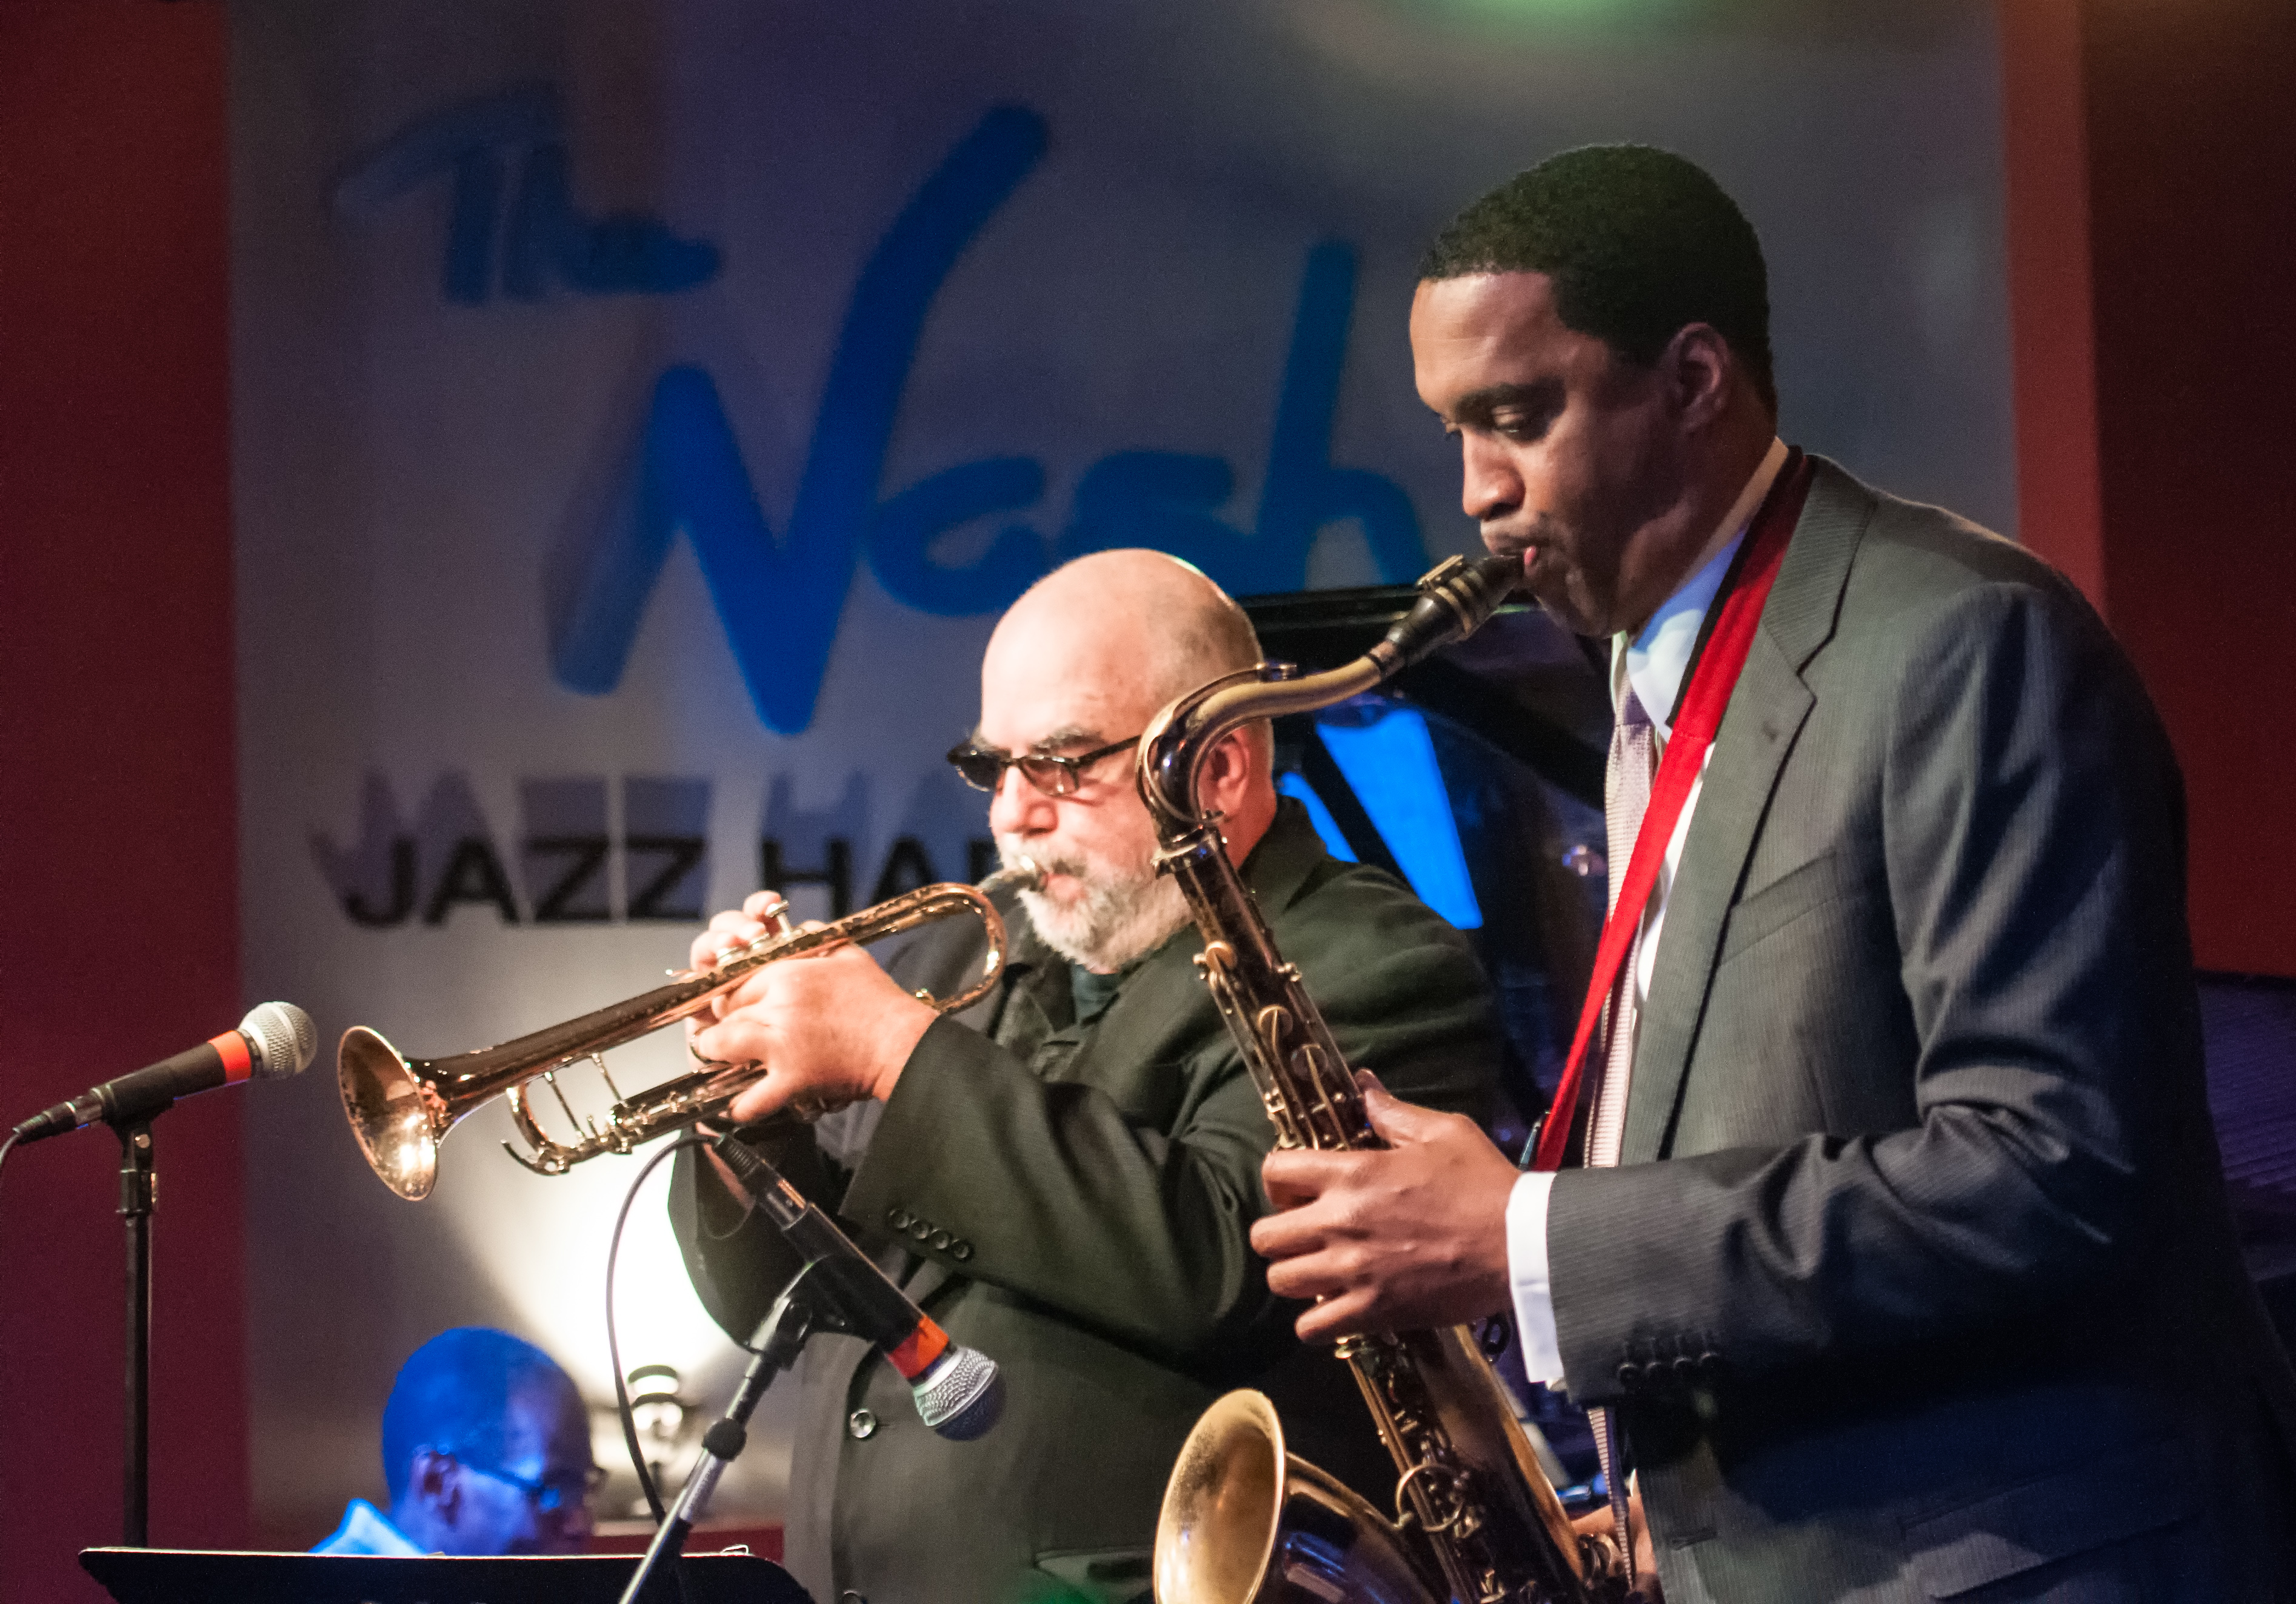 Randy Brecker And Javon Jackson With The Lewis Nash All Stars At The Nash In Phoenix